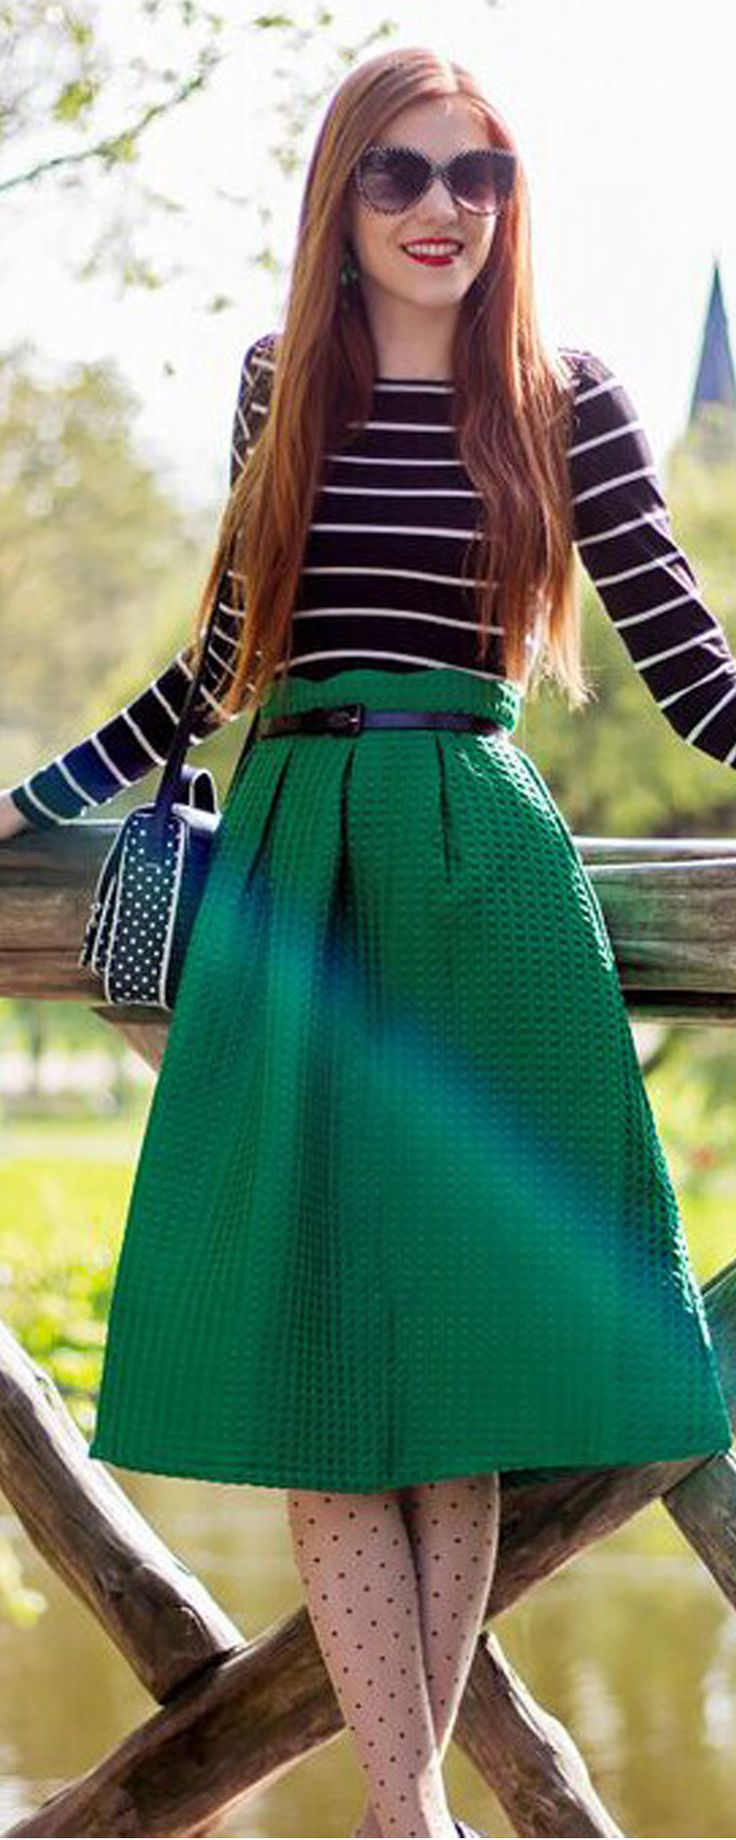 This Green High Waist Plaid skirt is so pretty! Pair with a fun pair of bright heels and you are ready for great street fashion.View more clothes for women outfits at www.shein.com